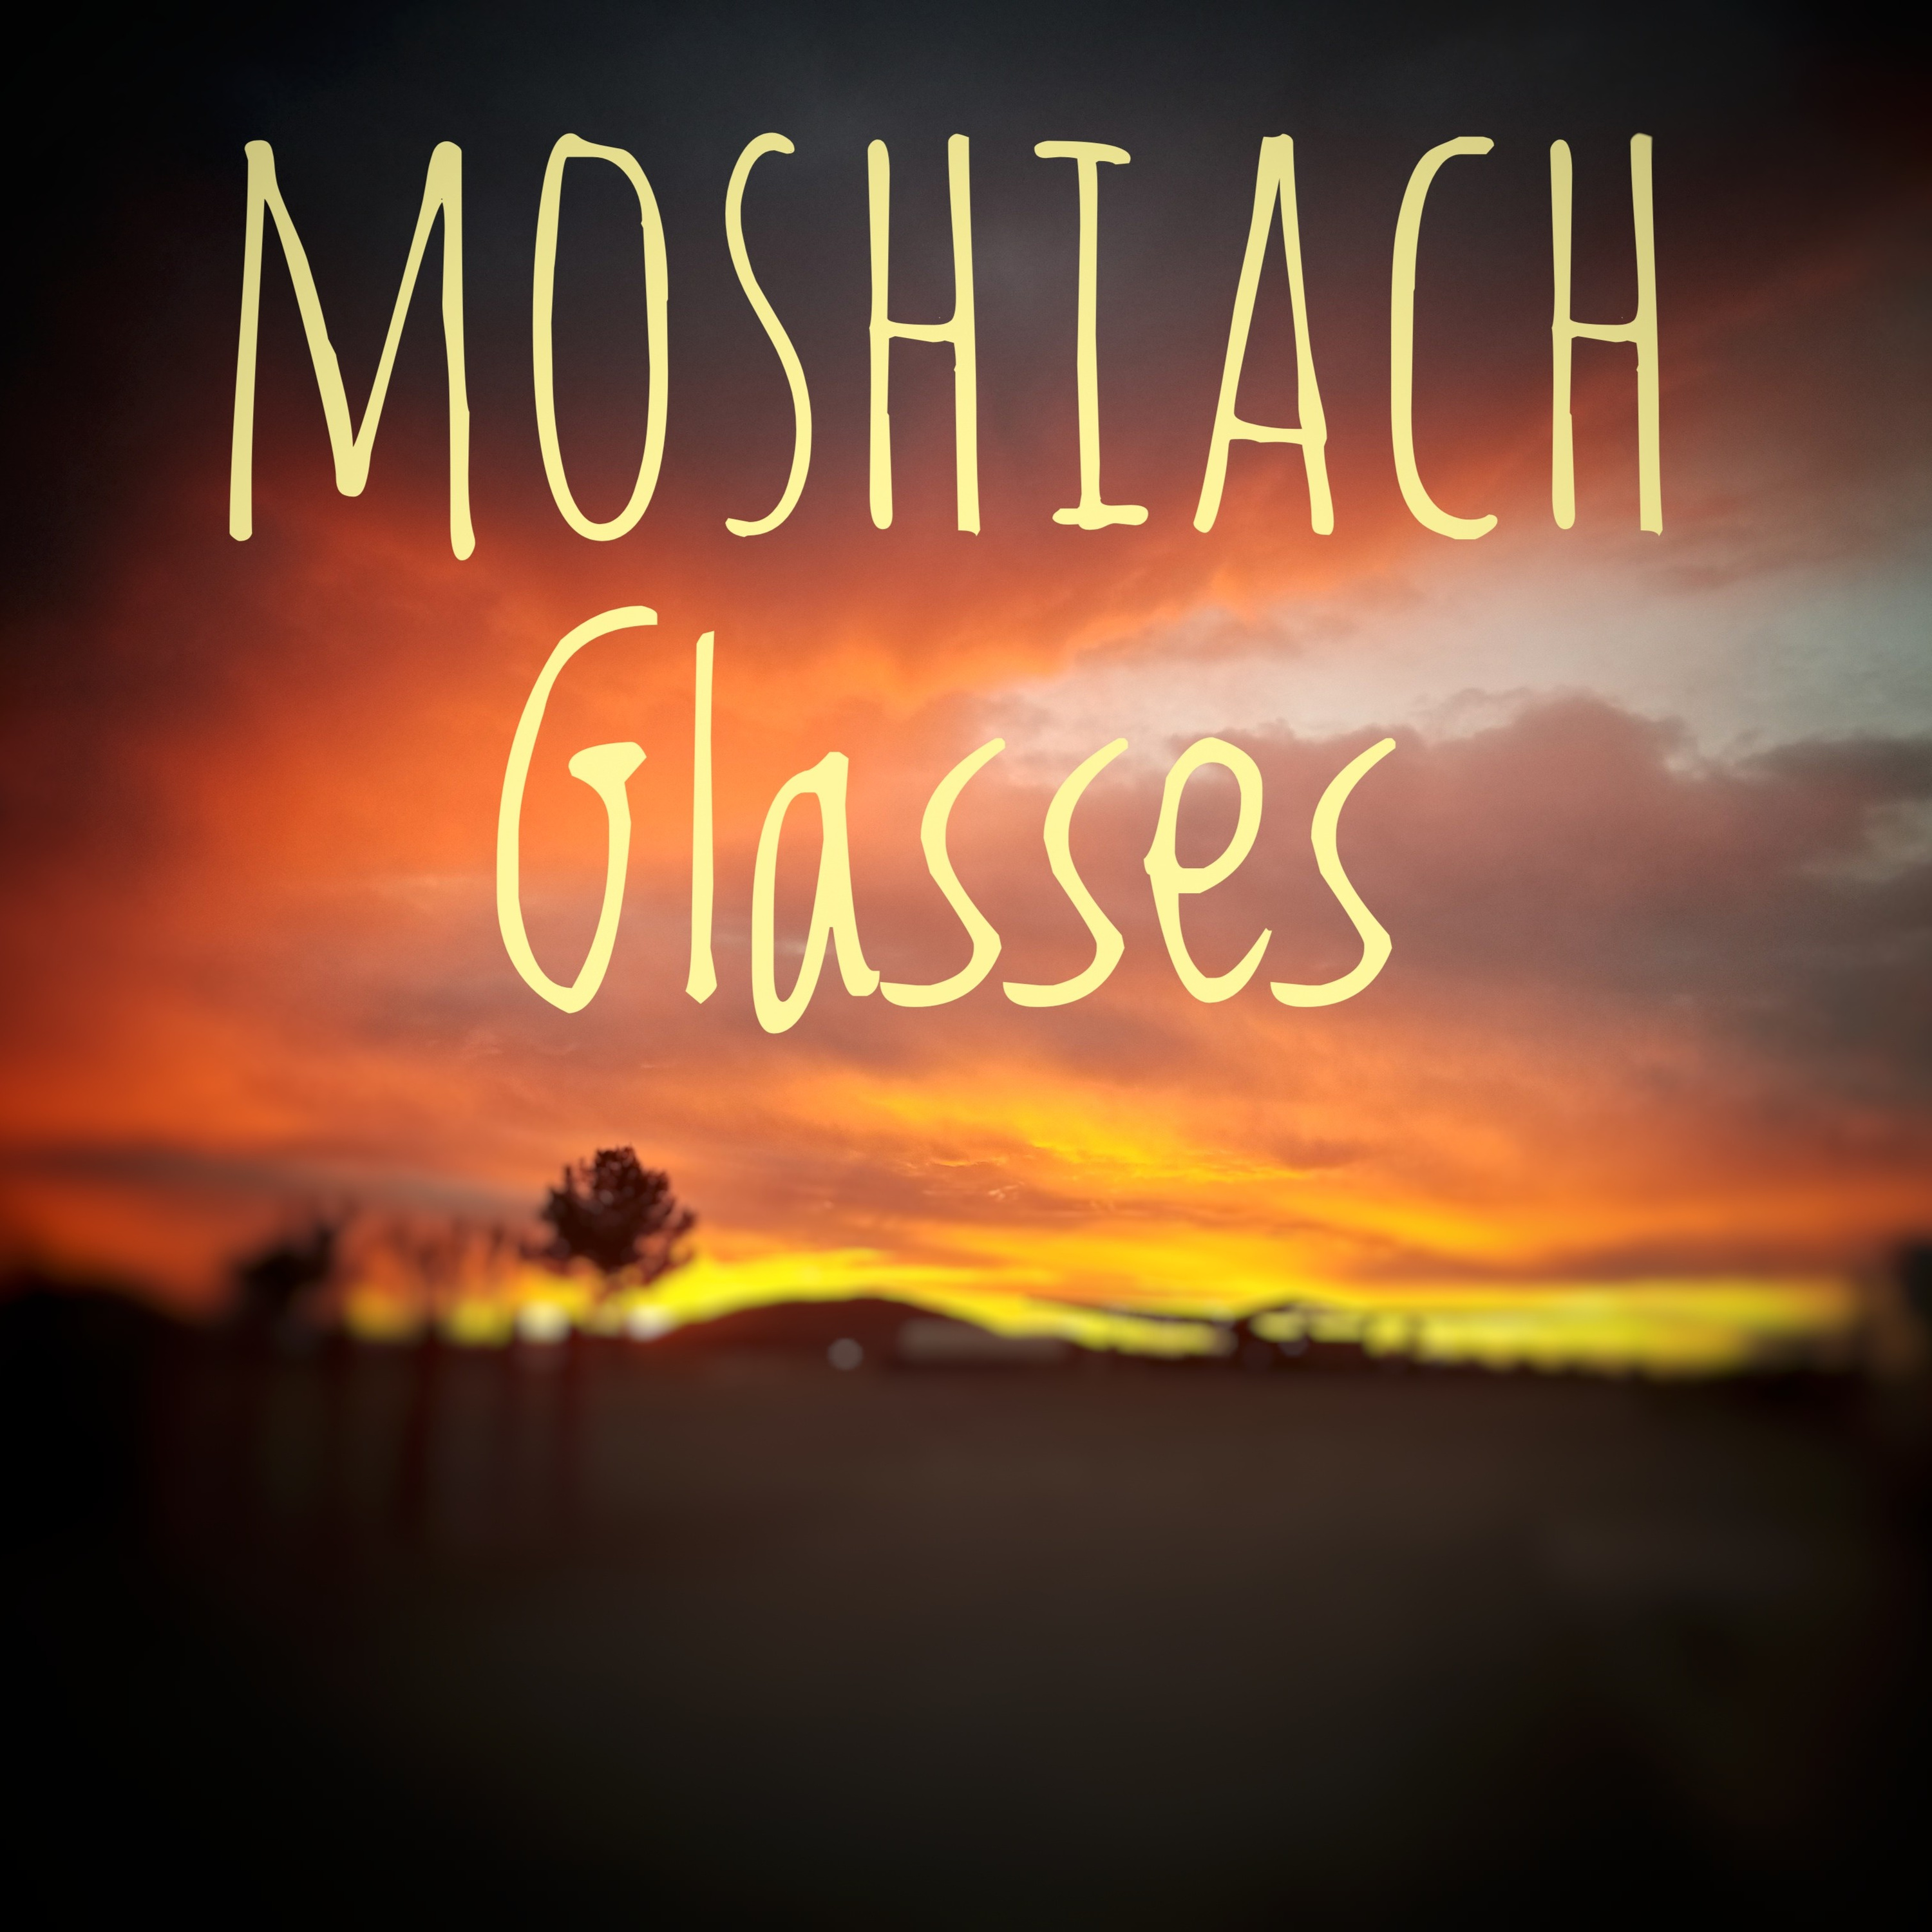 Moshiach glasses - Why is it hard to see it as a reality? #01